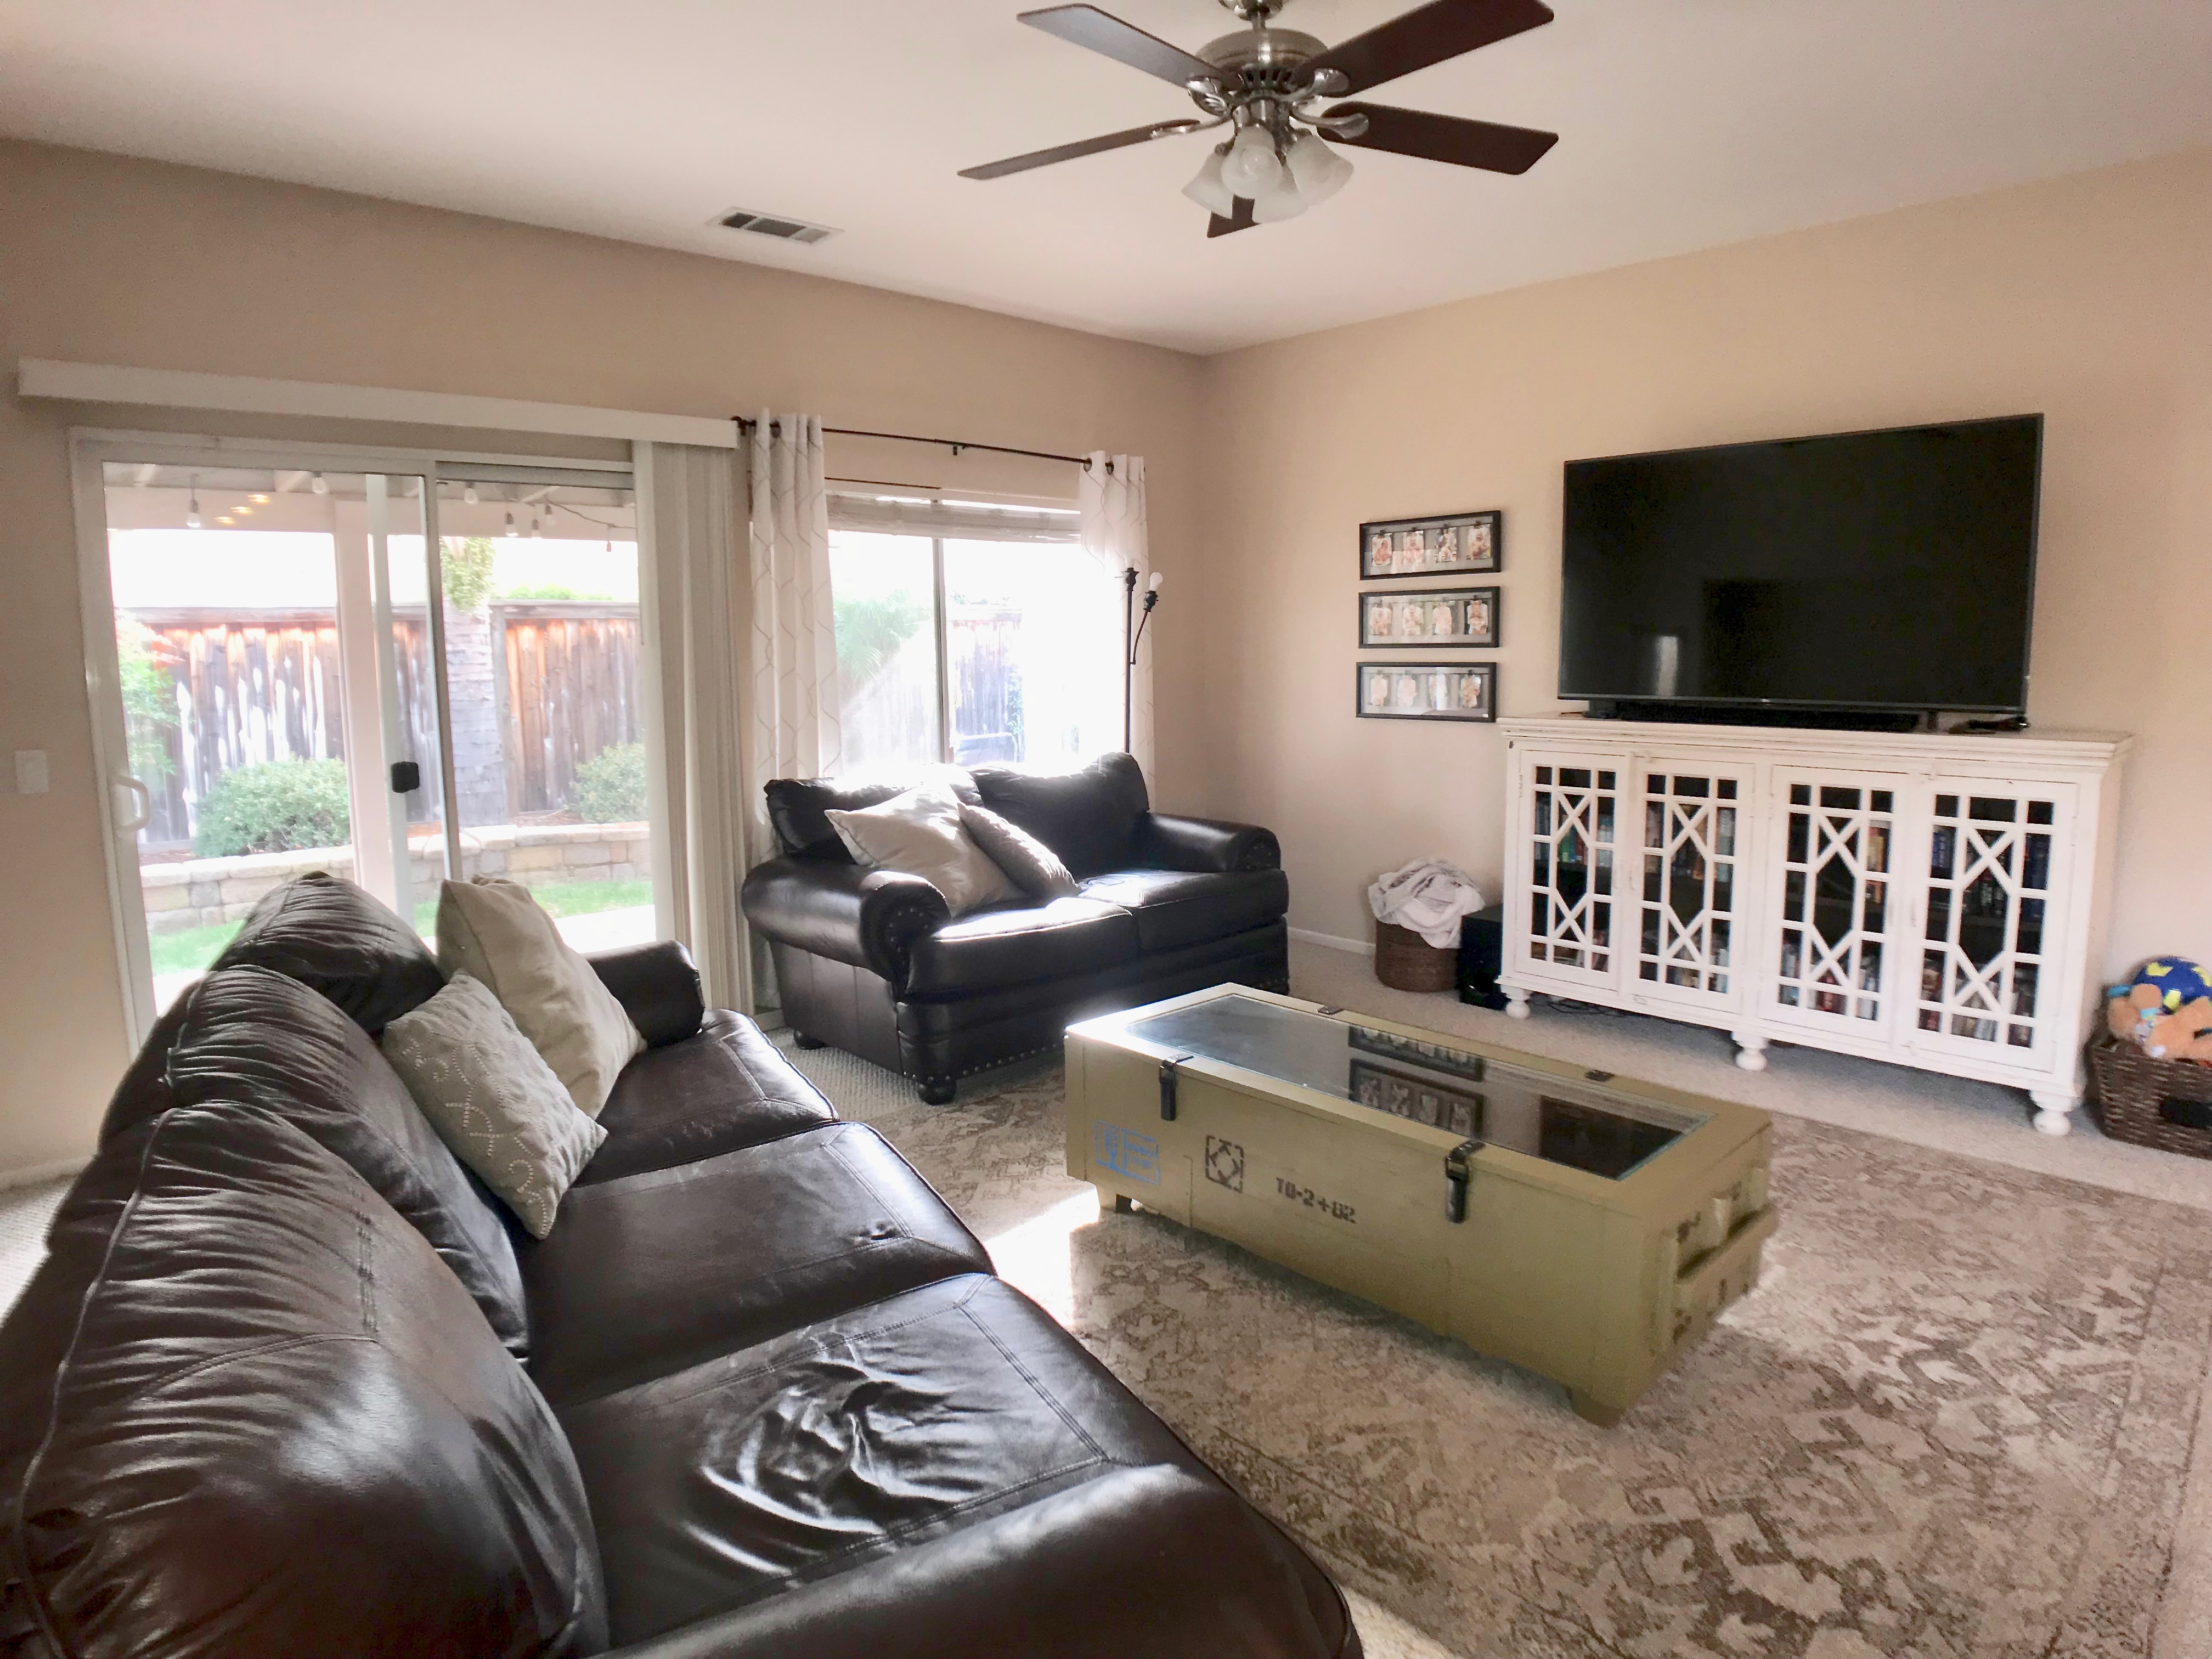 Do use natural light to your advantage when taking home listing photos.